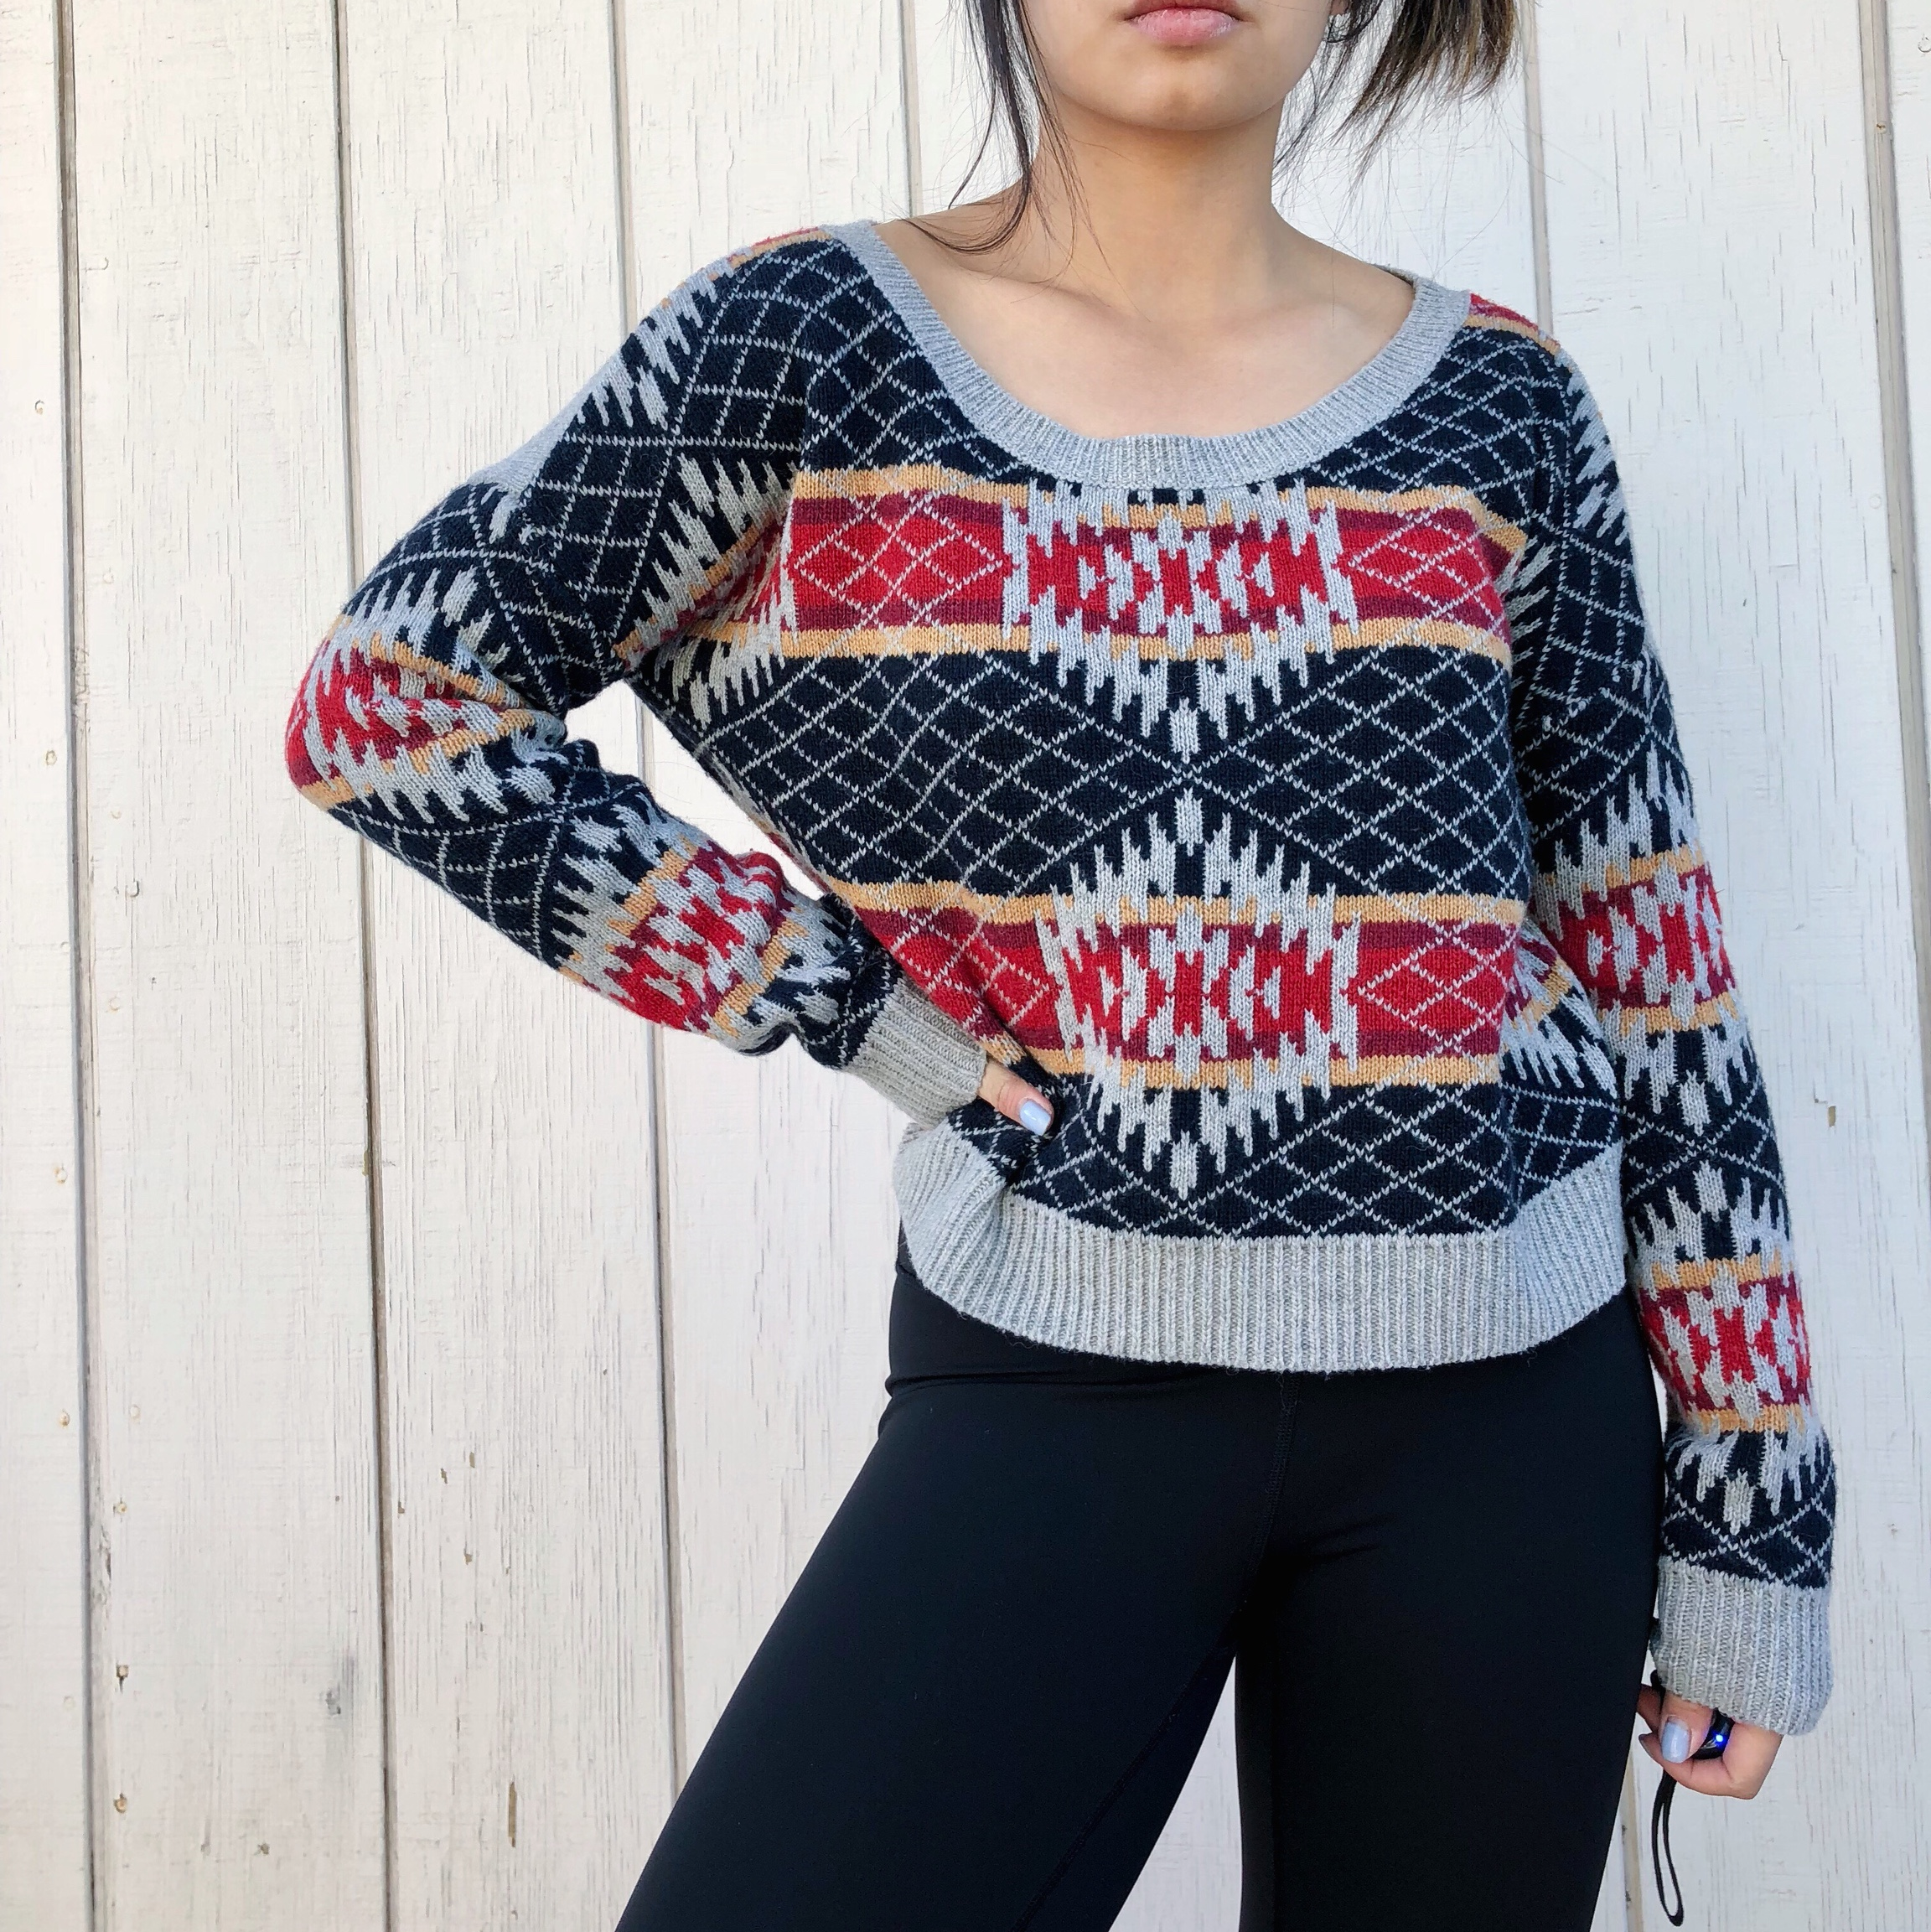 Urban Outfitters Ugly Christmas Sweater.Urban Outfitters Ugly Christmas Sweater Grey Long